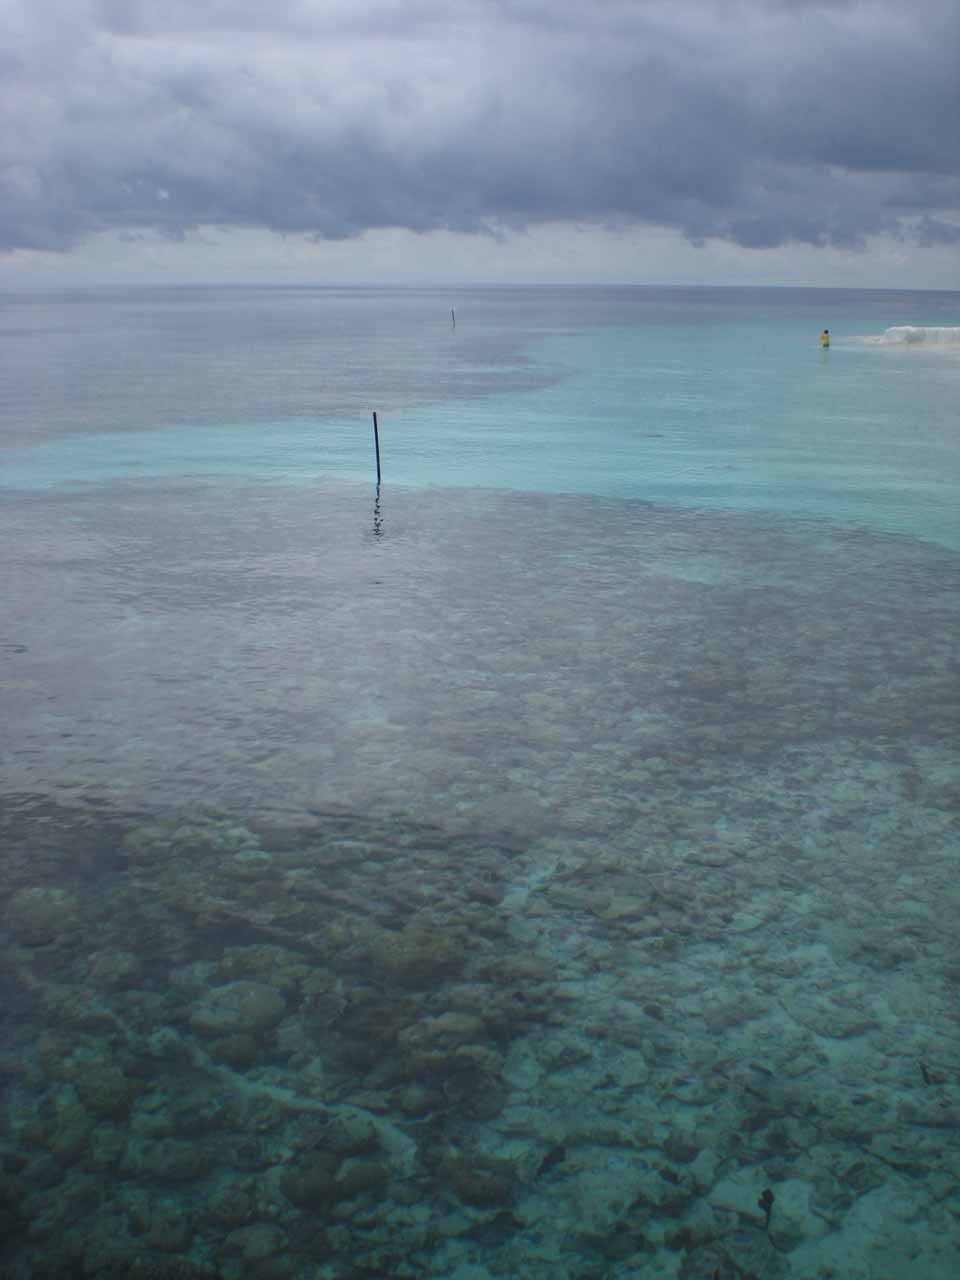 The view out towards the reef under the cloudy skies from the Angsana